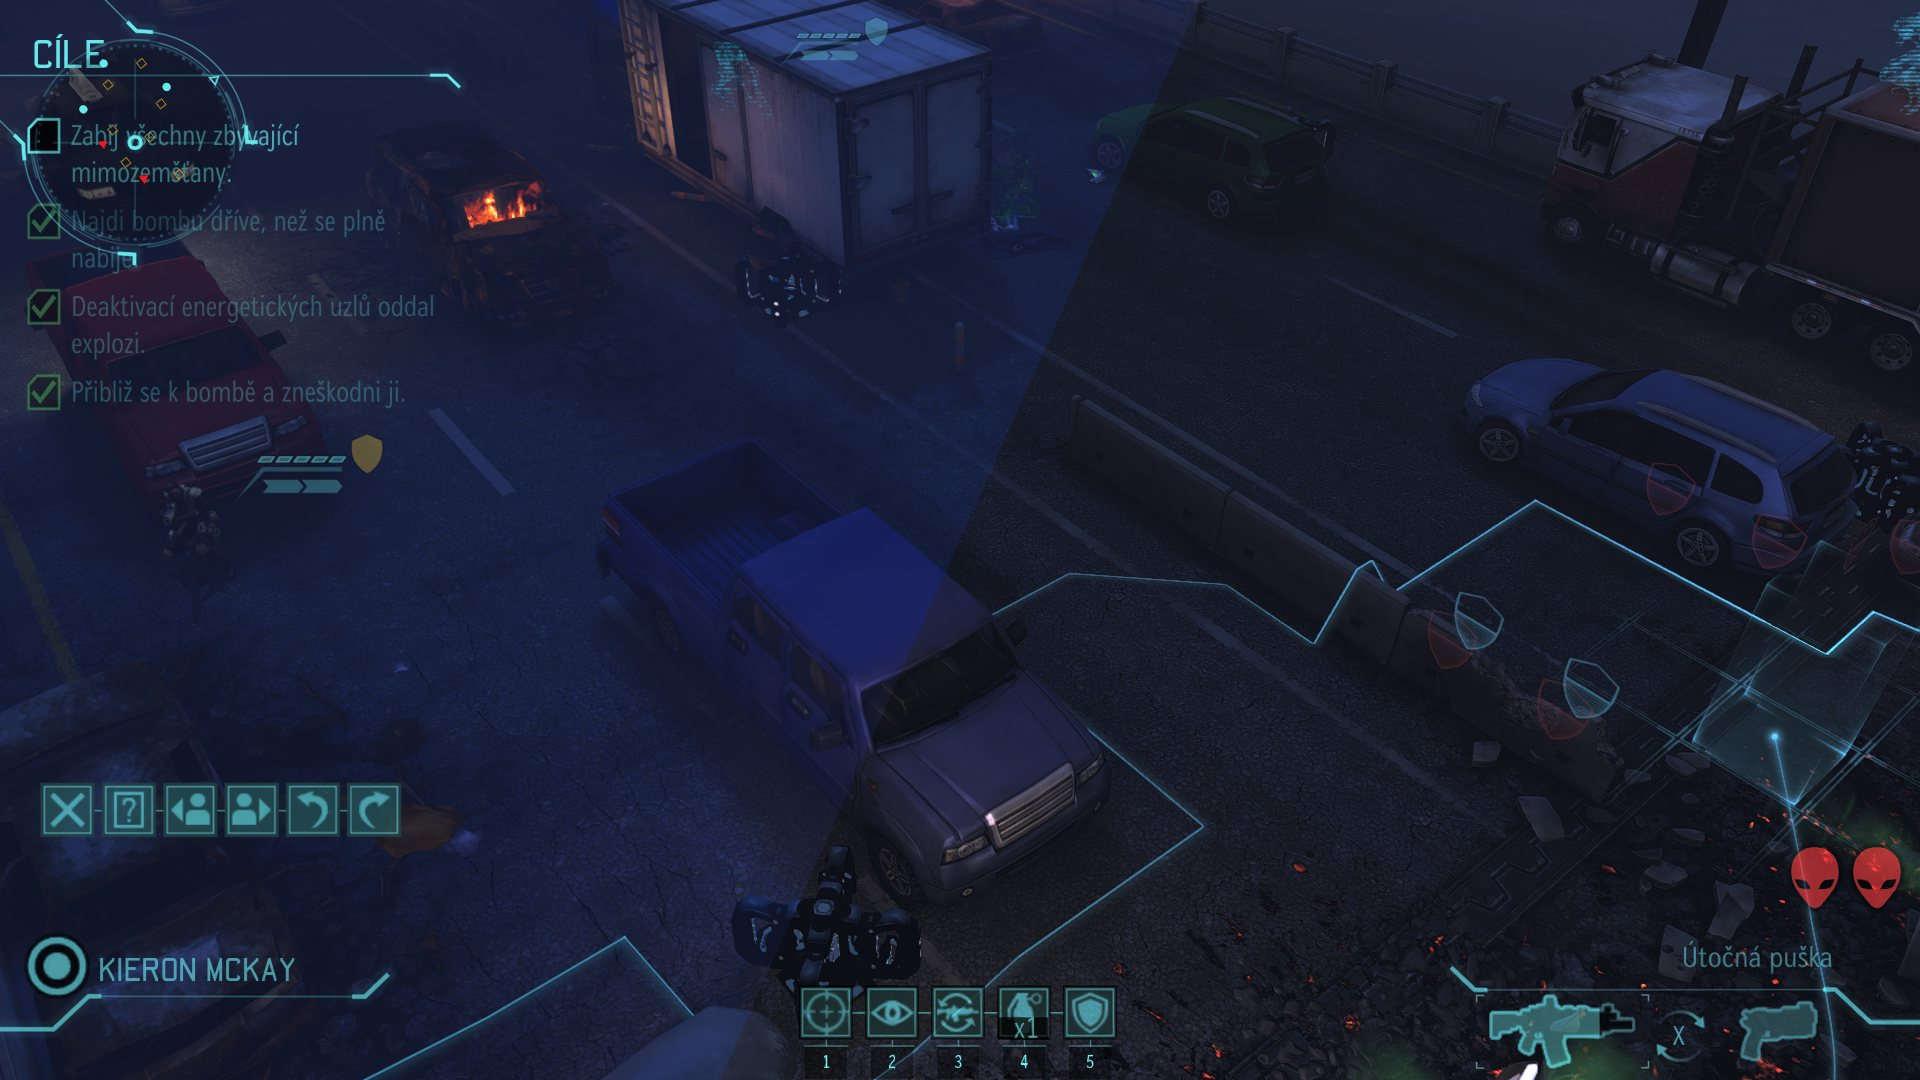 Xcom Crashed At With Error Trying To Access